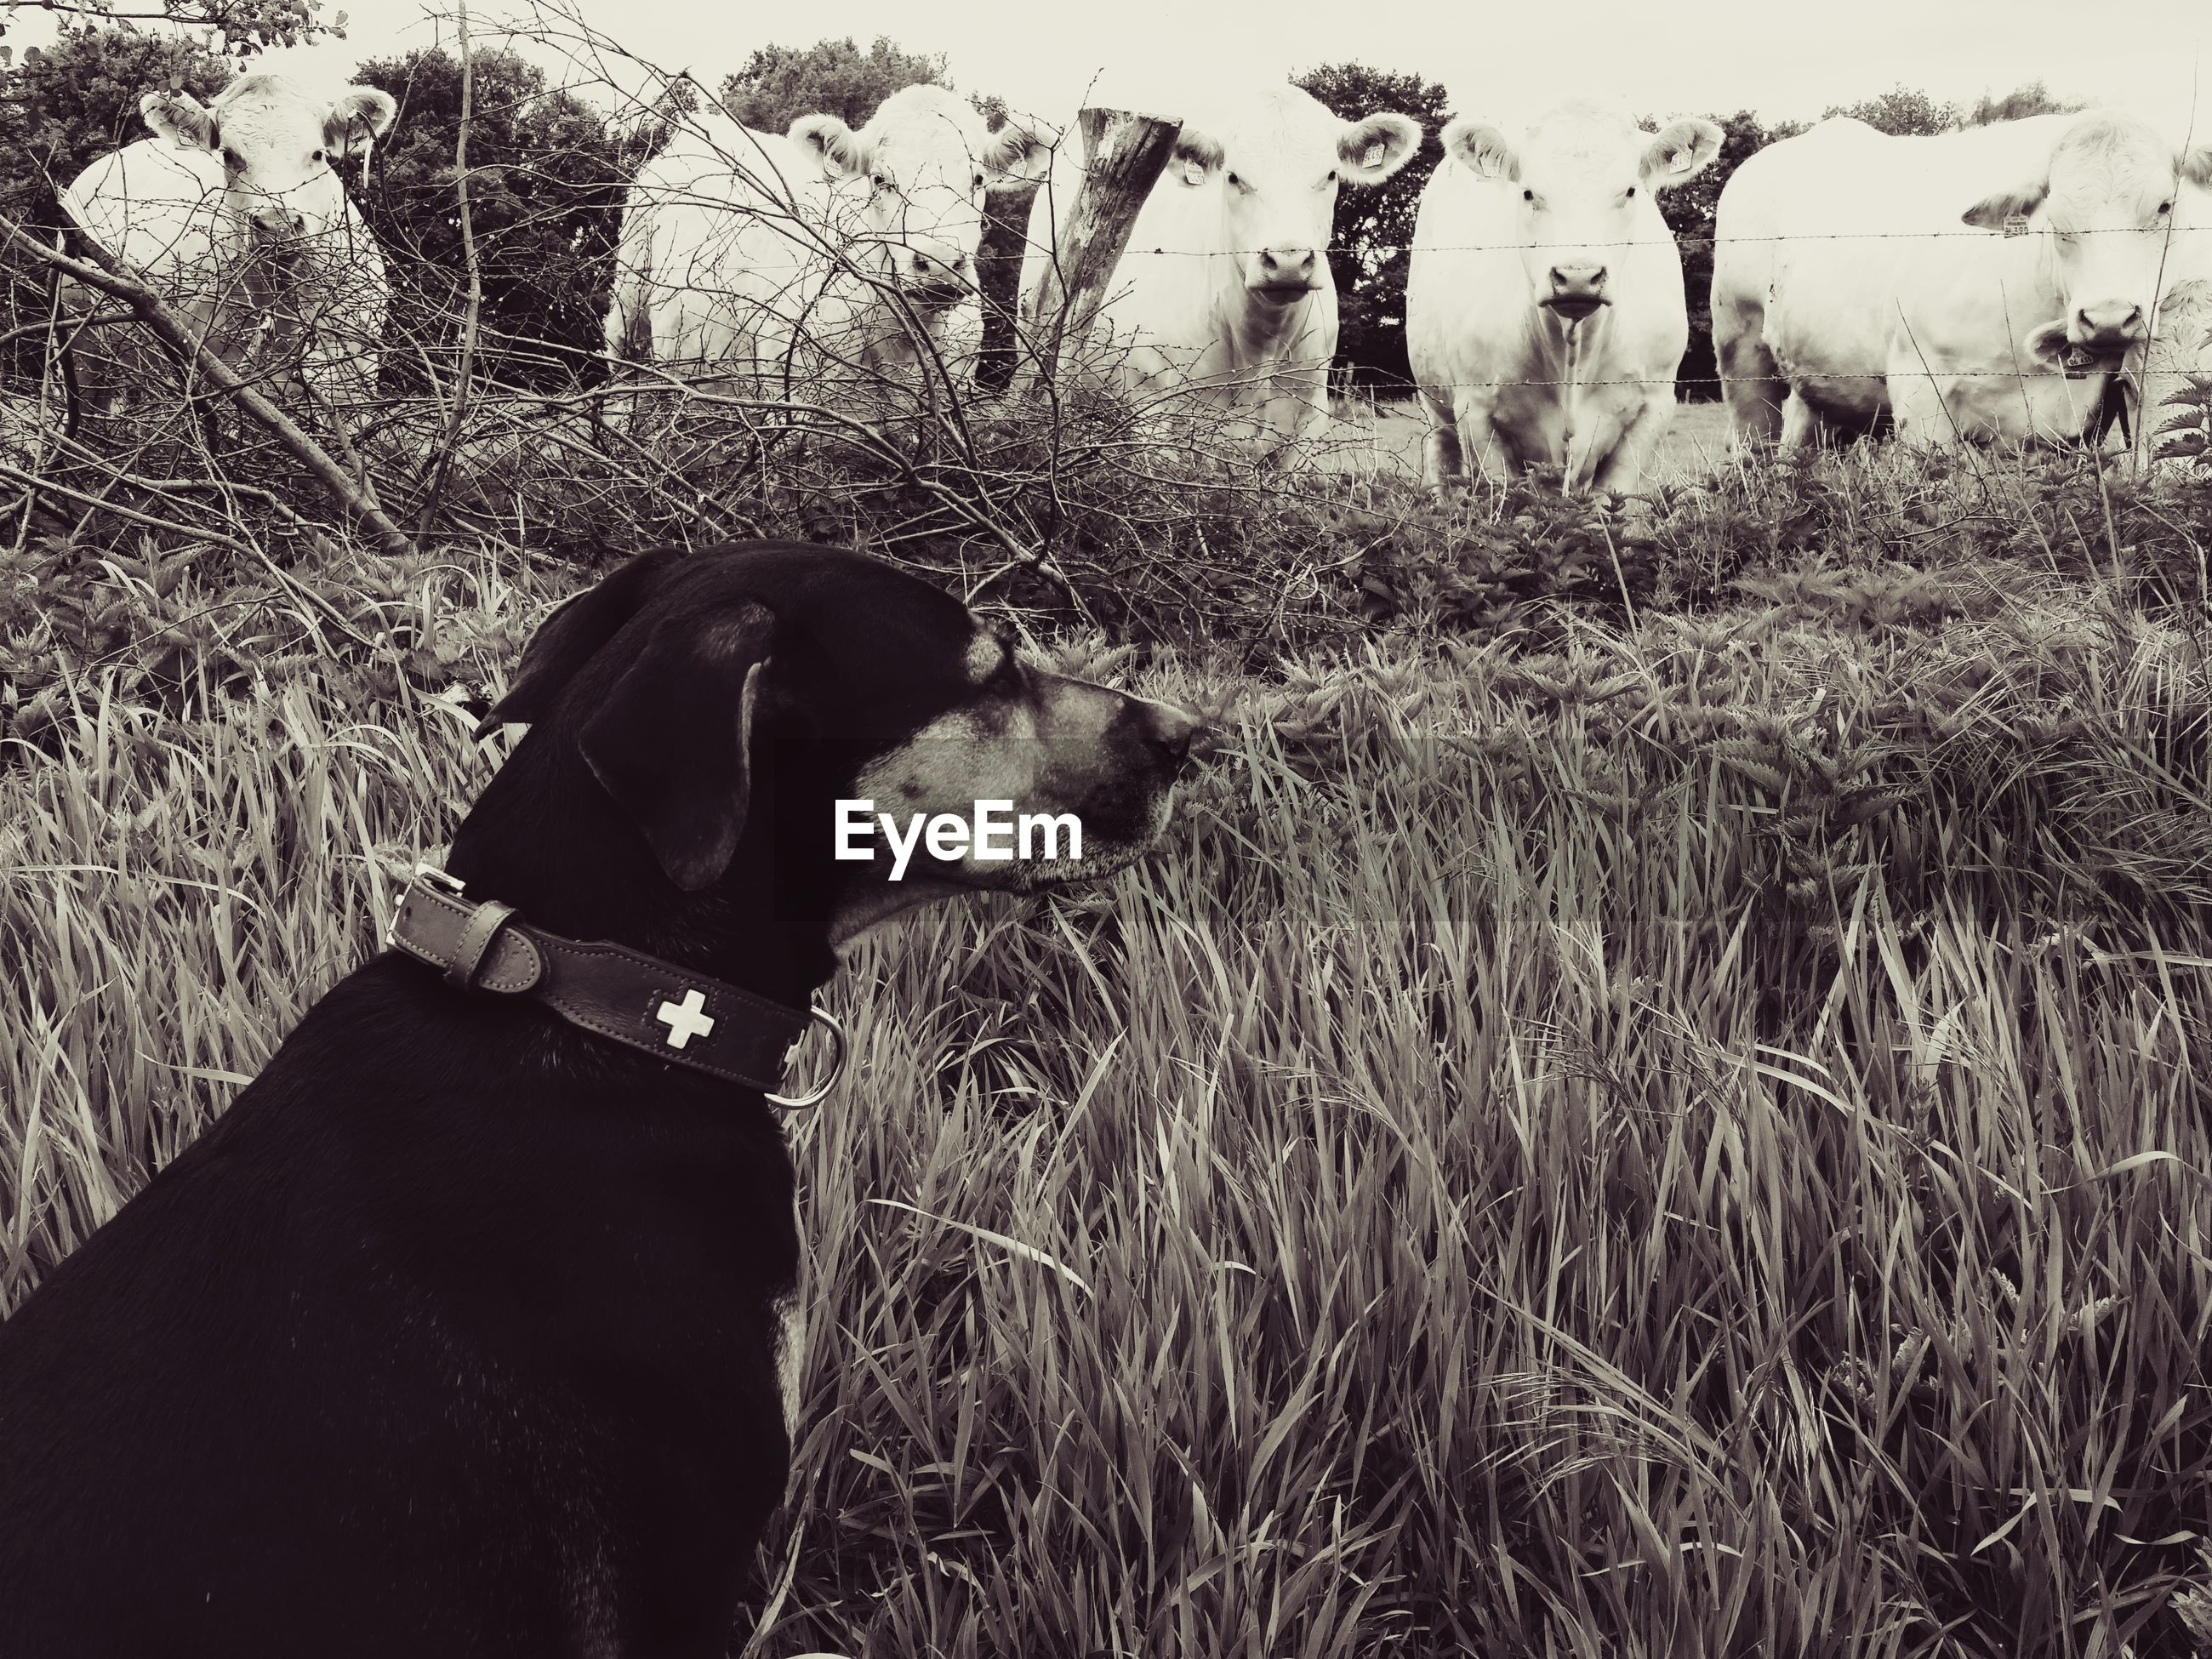 Cows looking at dog on grassy field